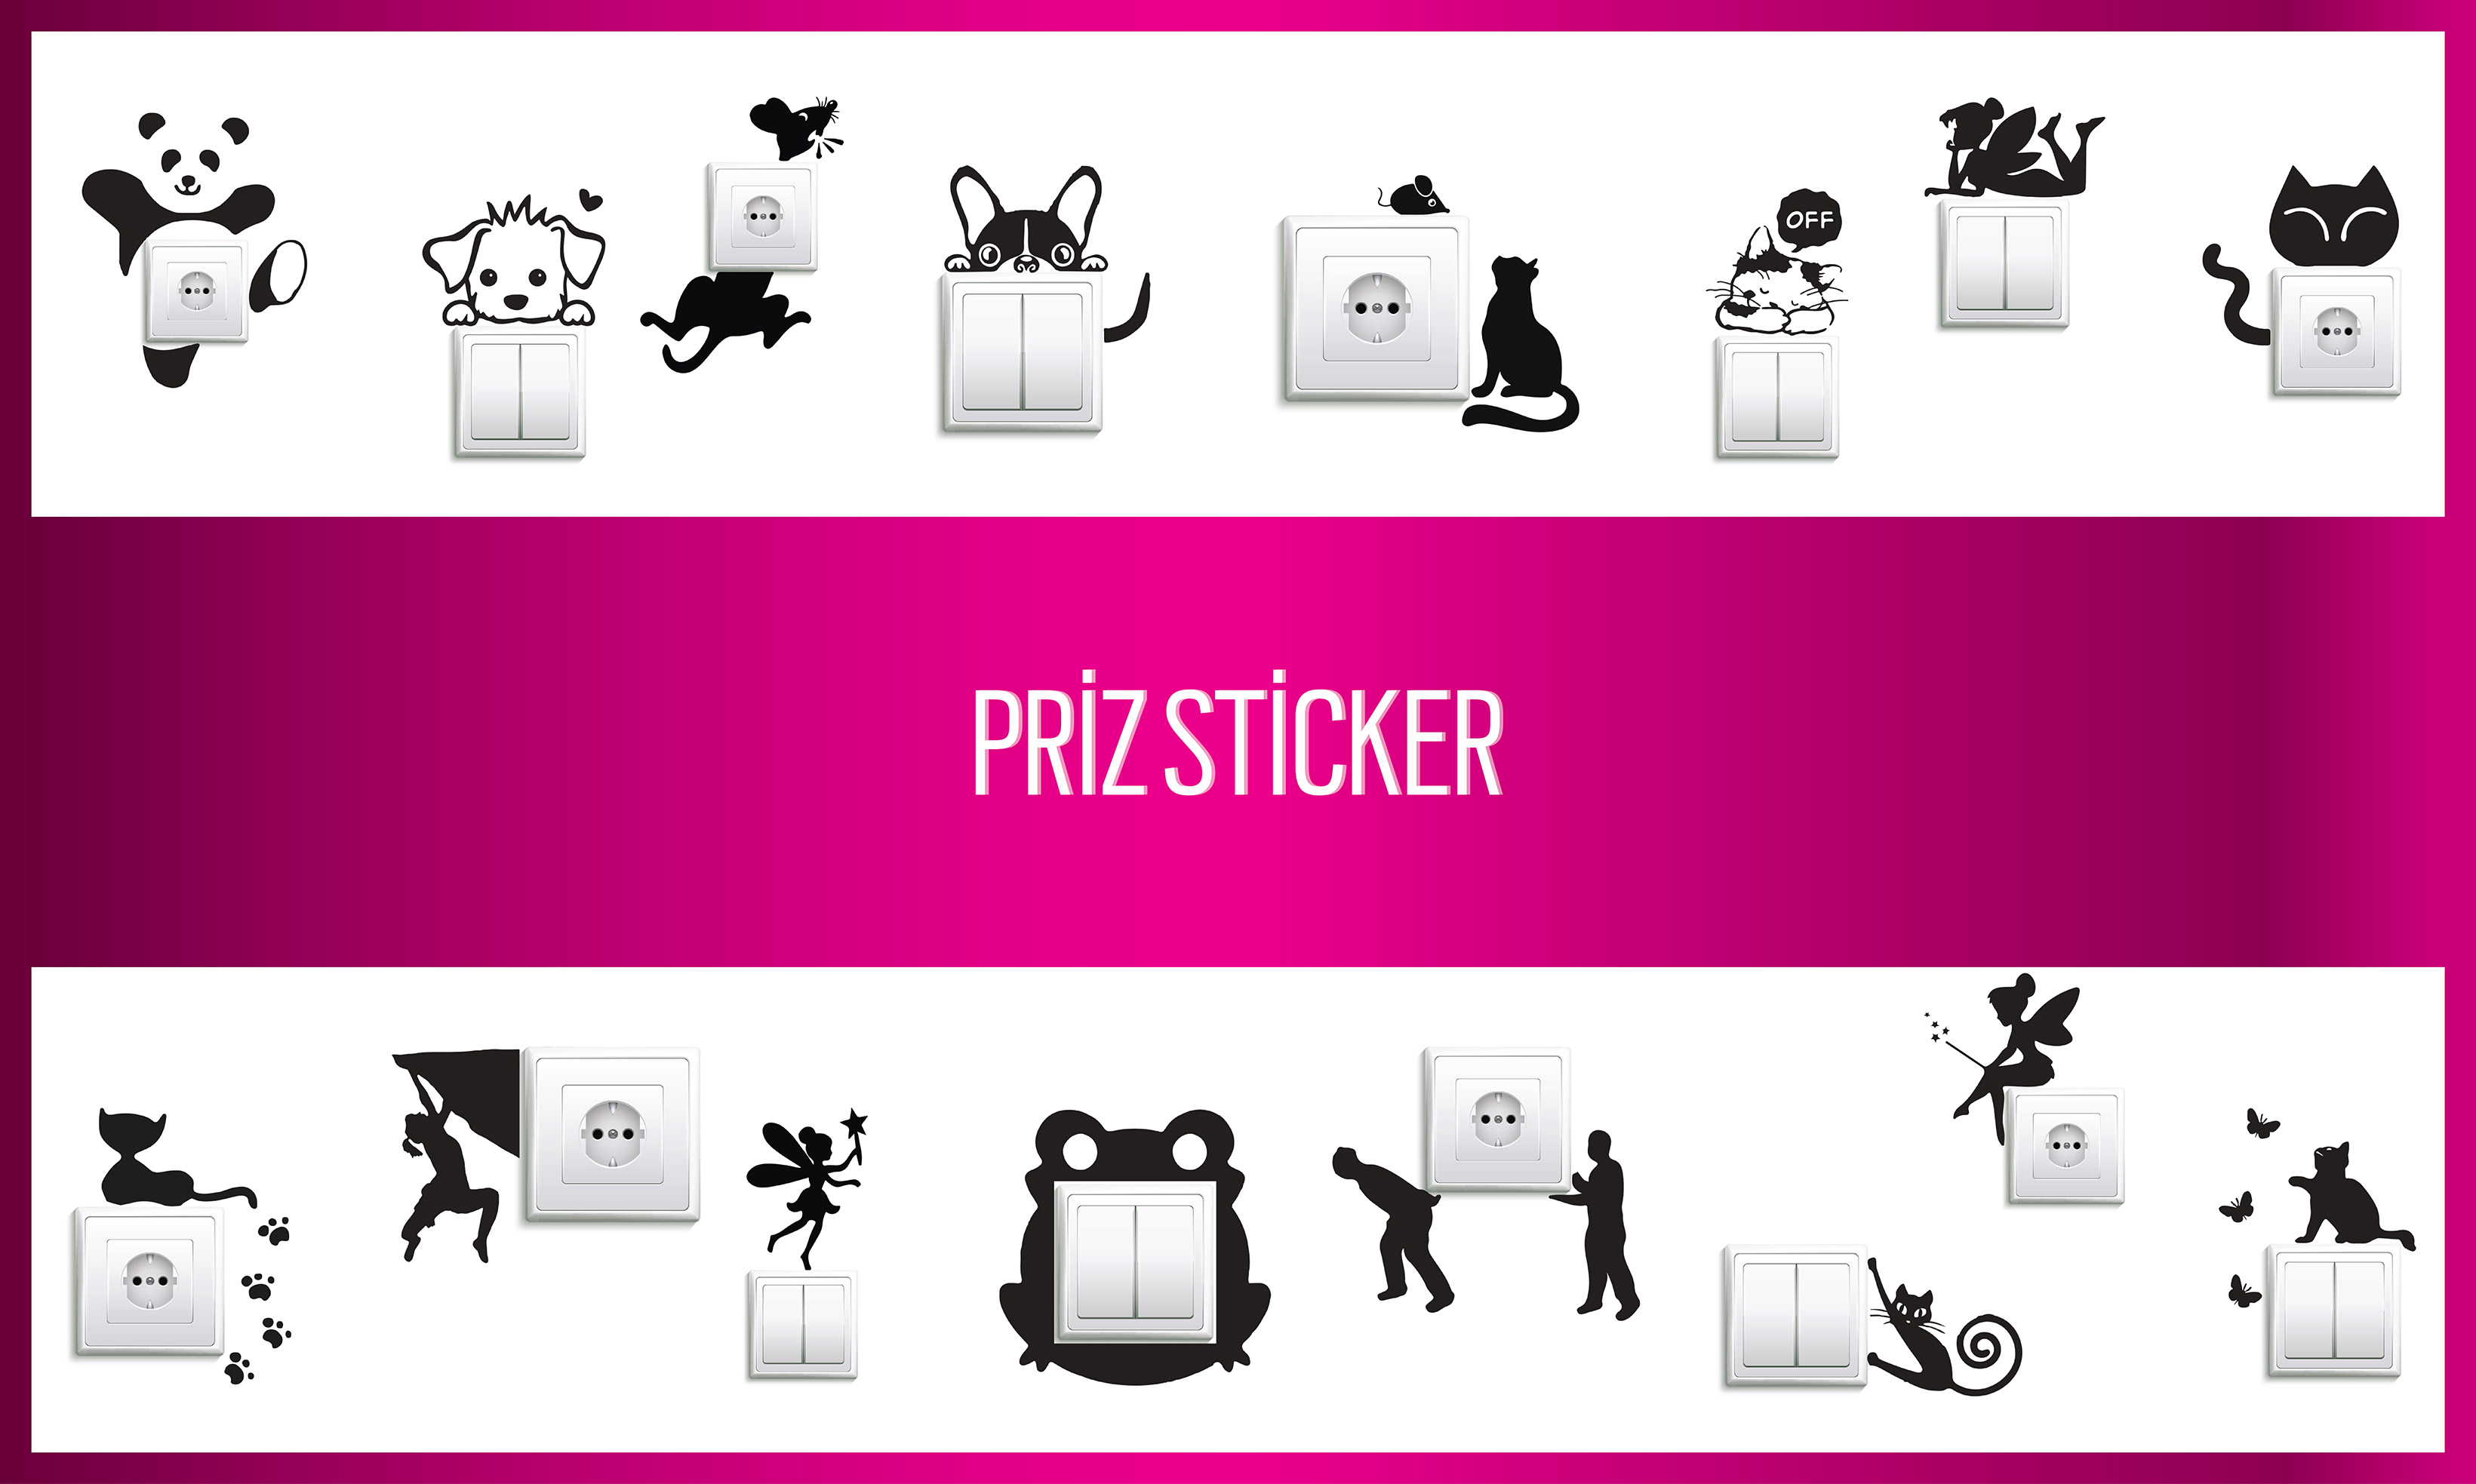 Priz Sticker